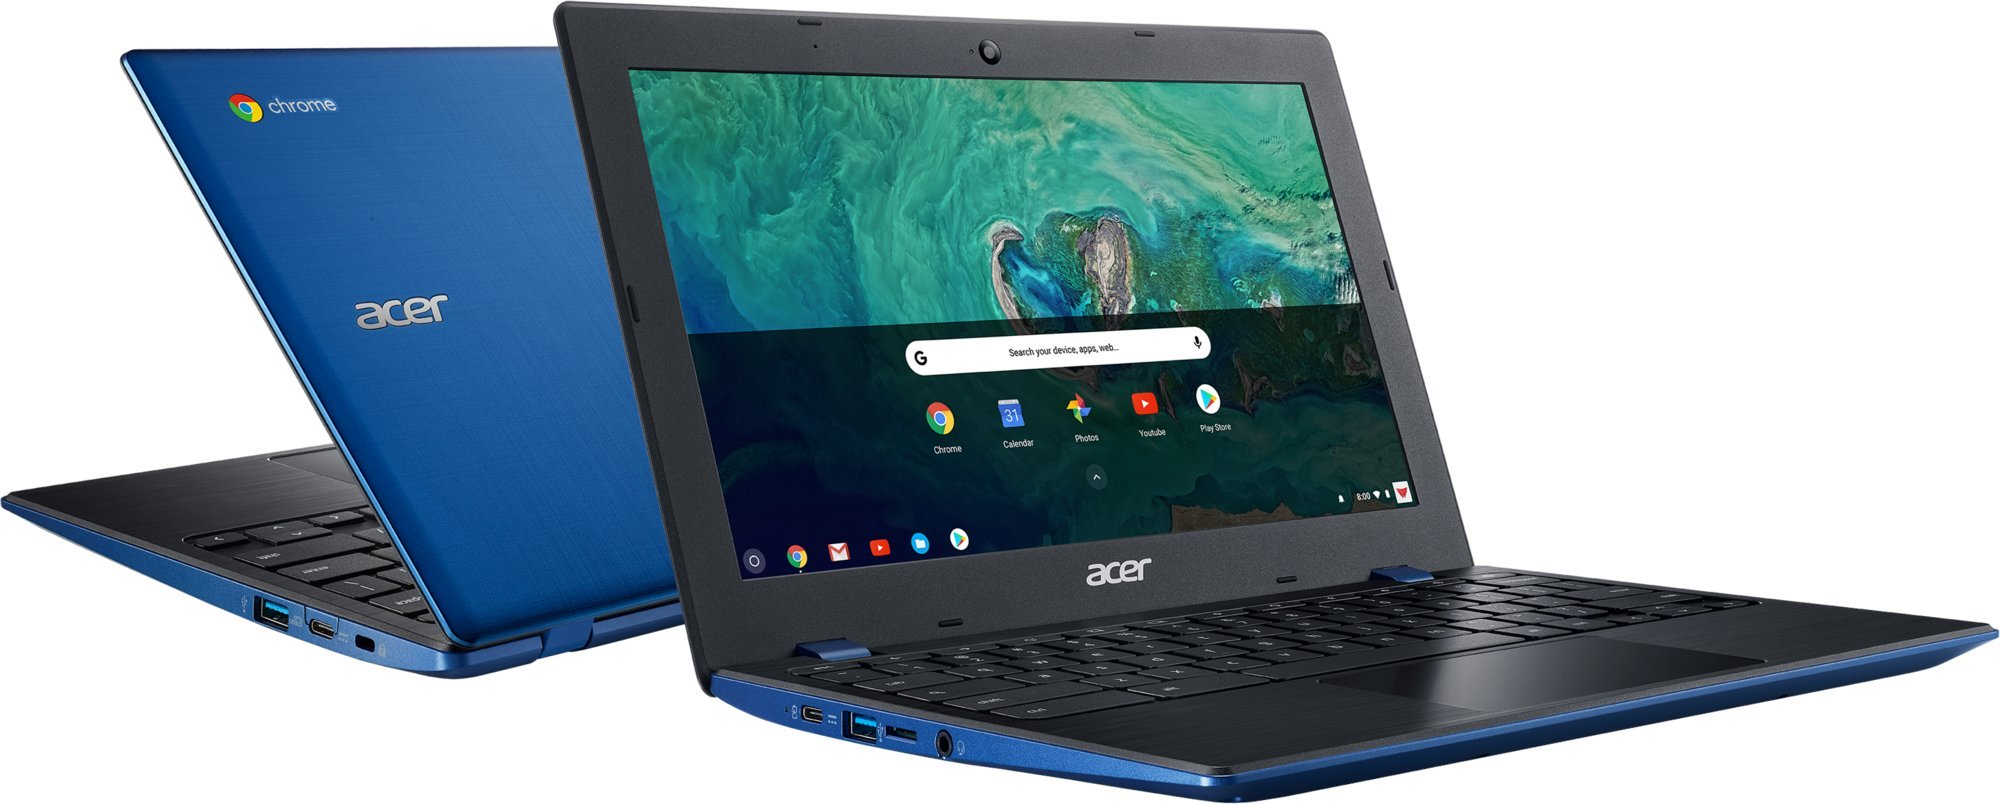 Acer Chromebook 11 CB311-8HT-C7BB